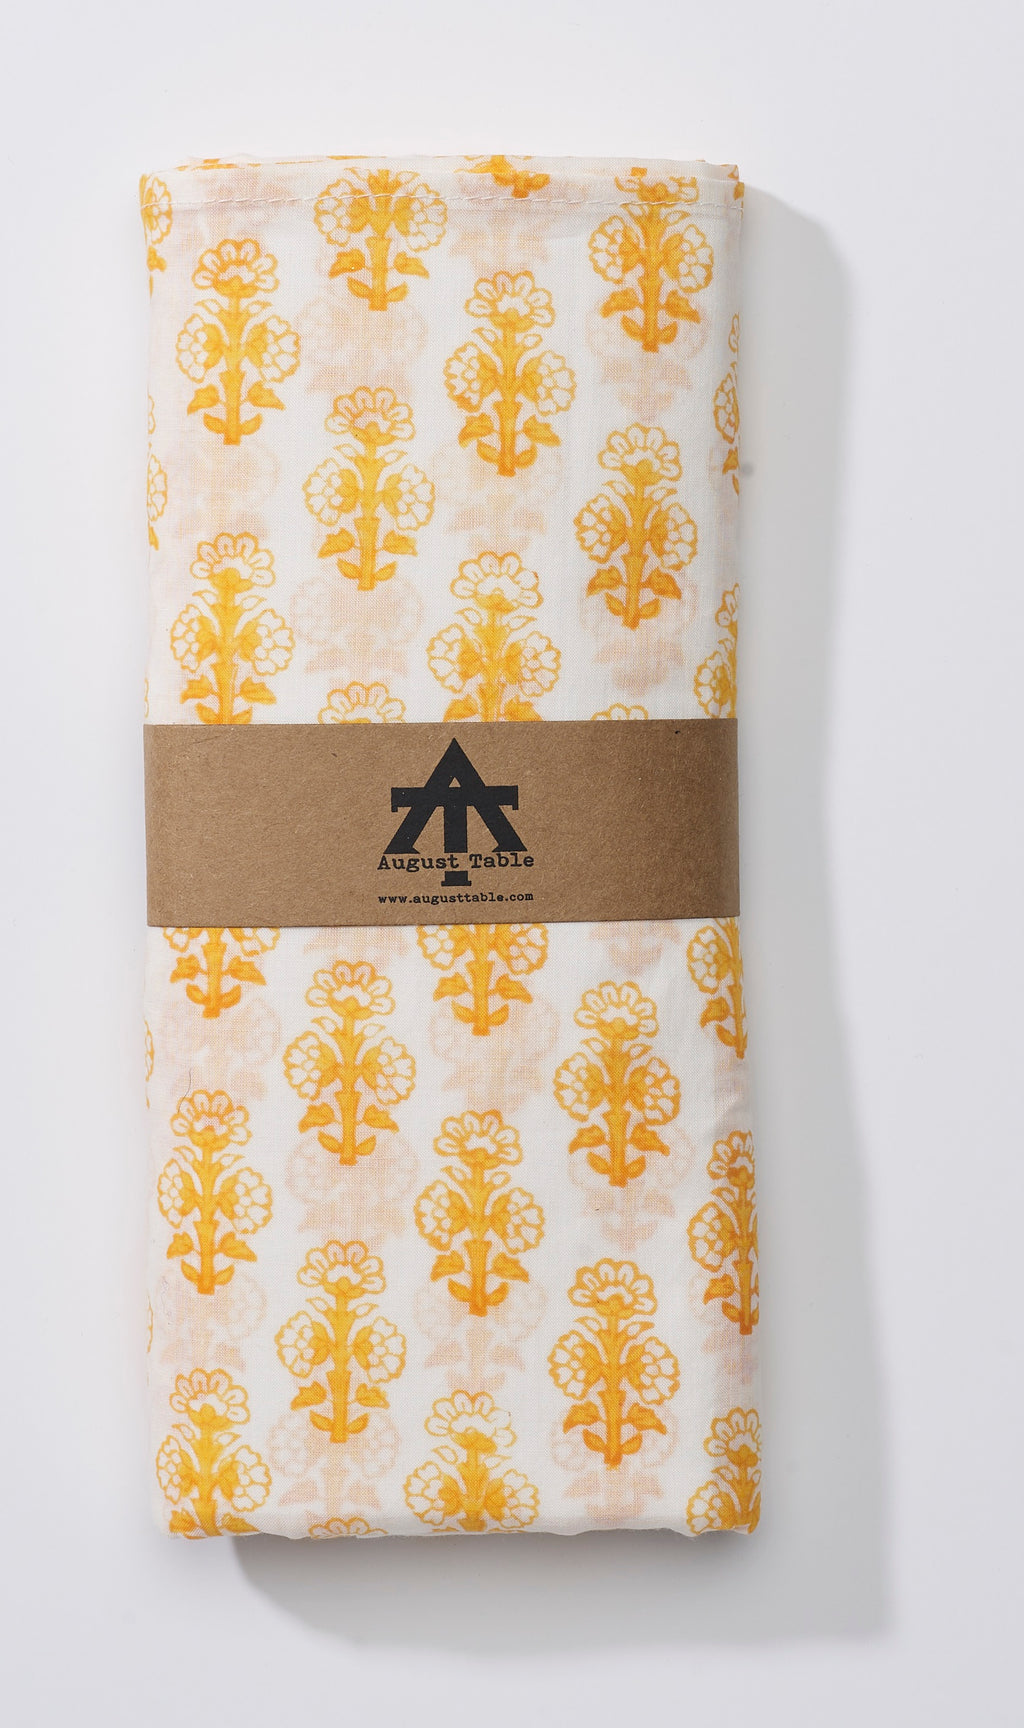 August Table Scarf - Talelayo print in Tanager Yellow